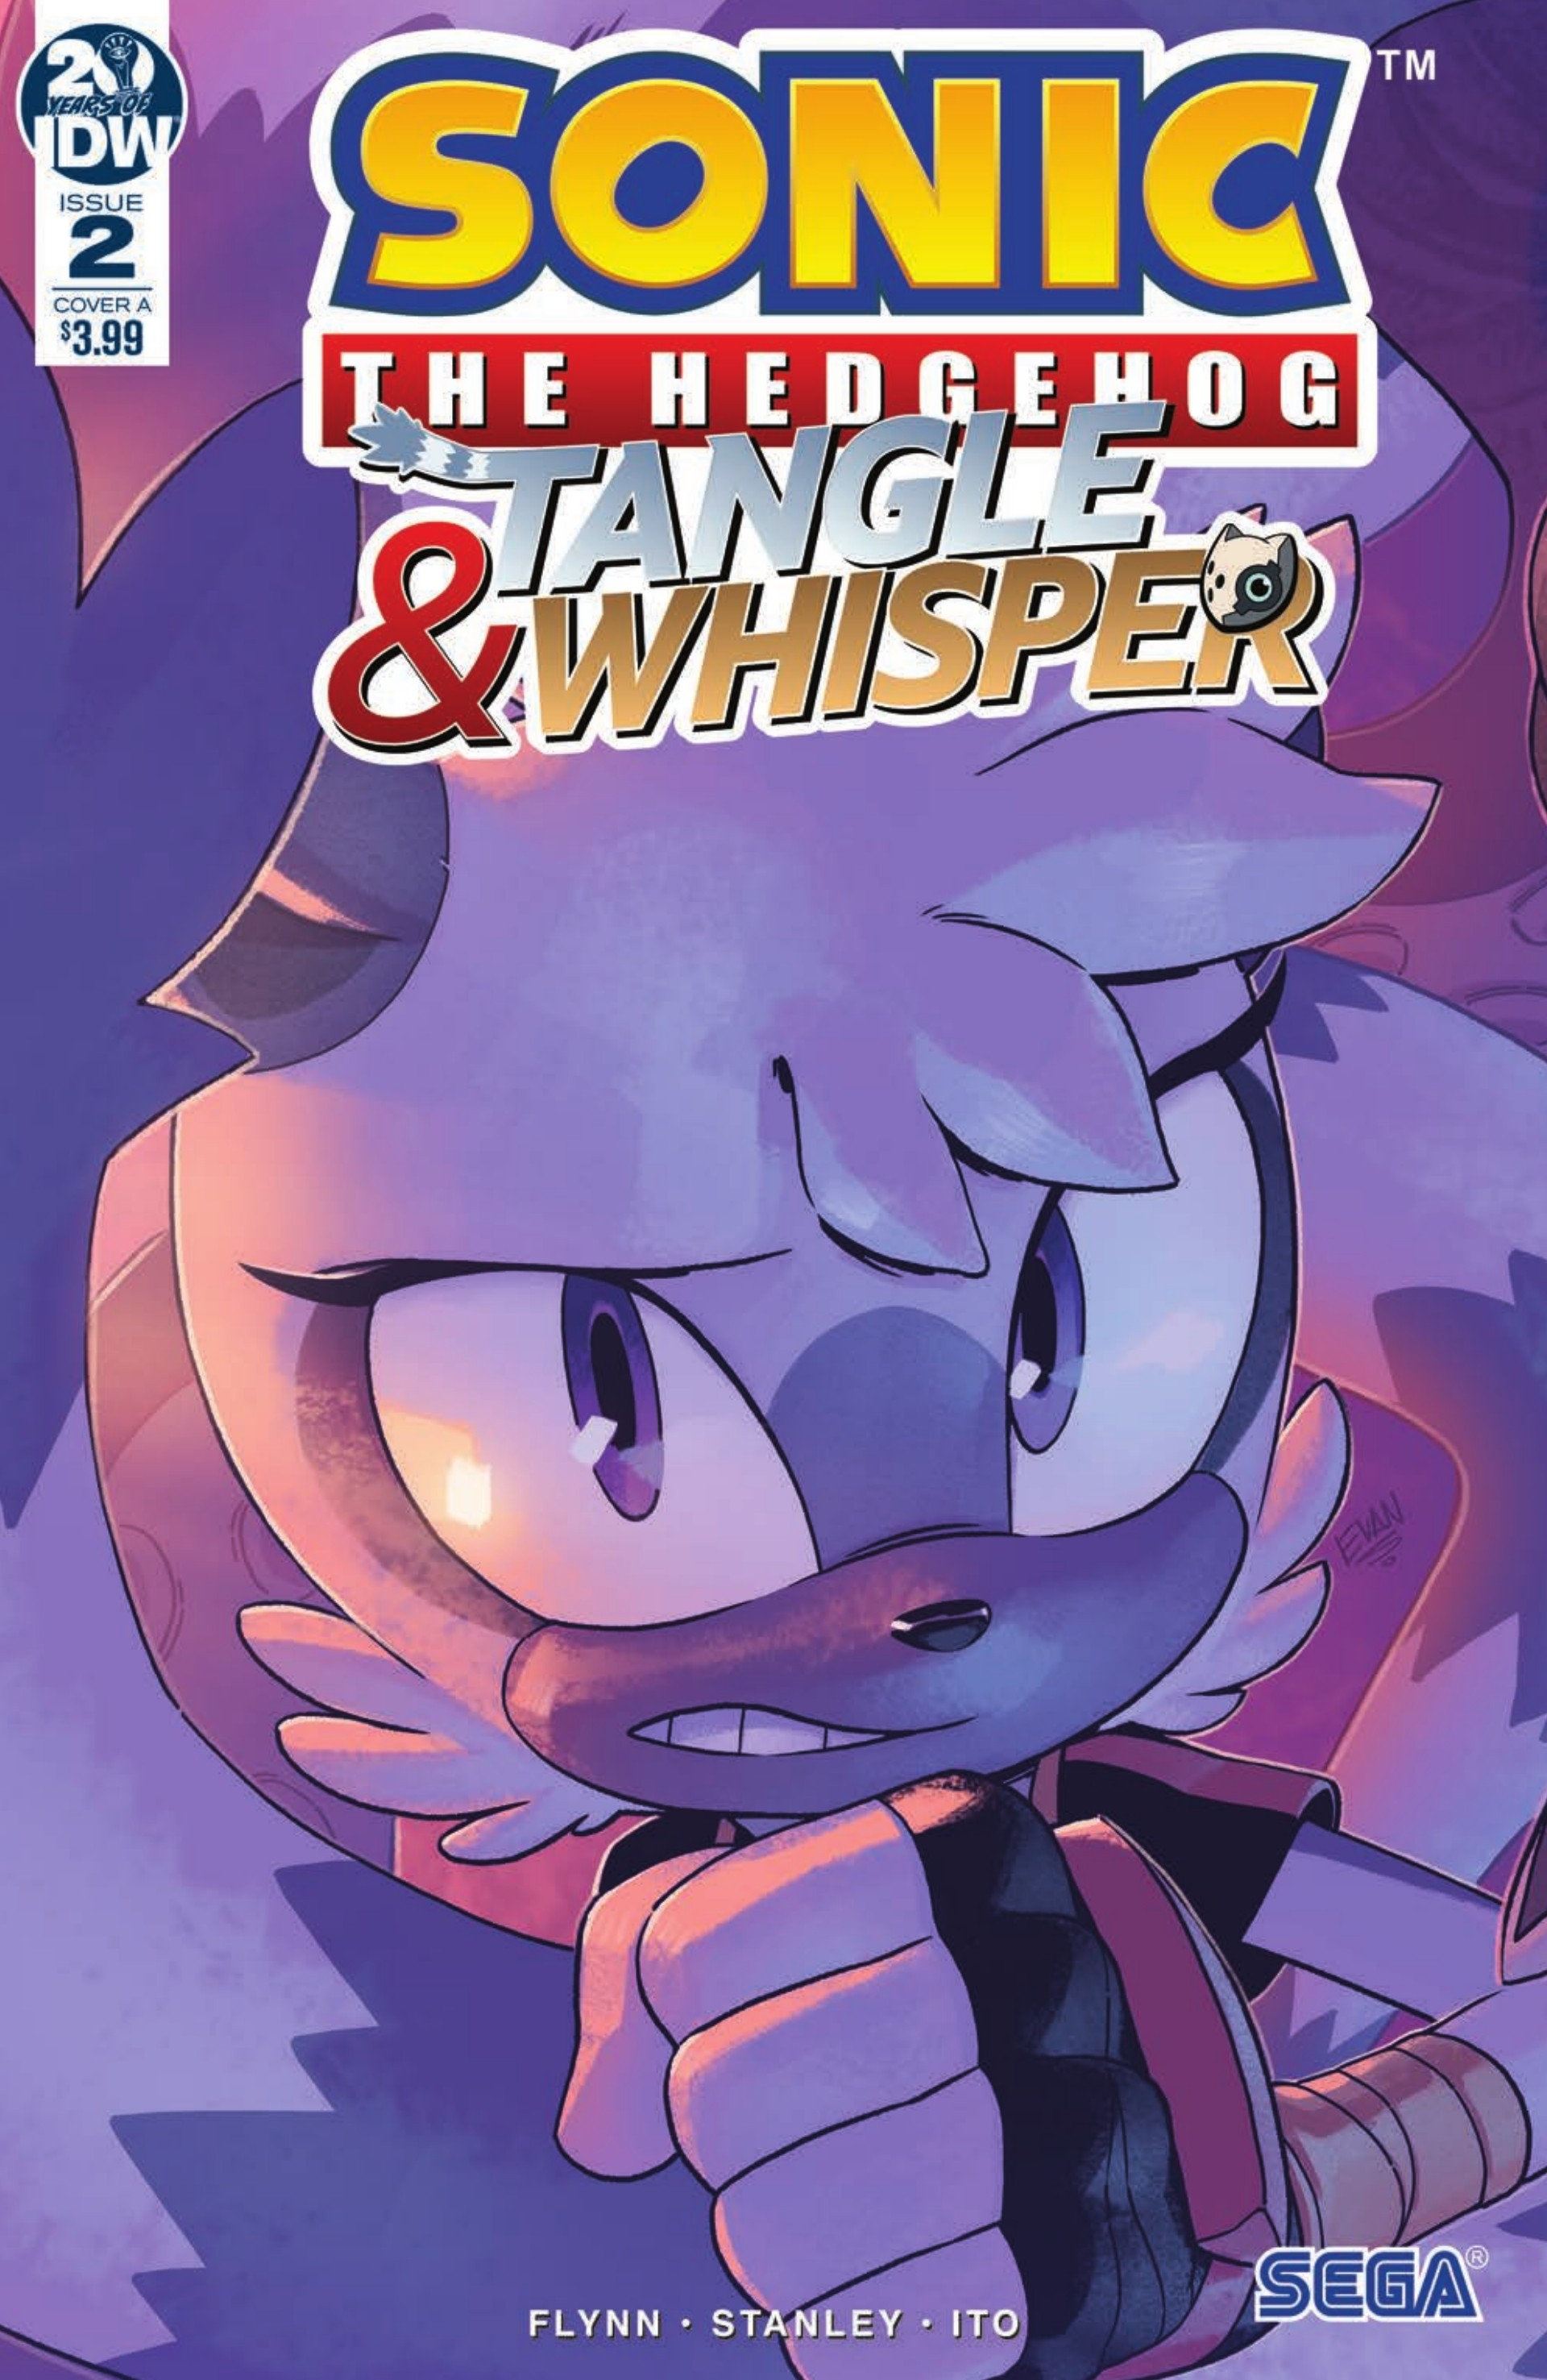 Preview Sonic The Hedgehog Tangle Whisper 2 Graphic Policy